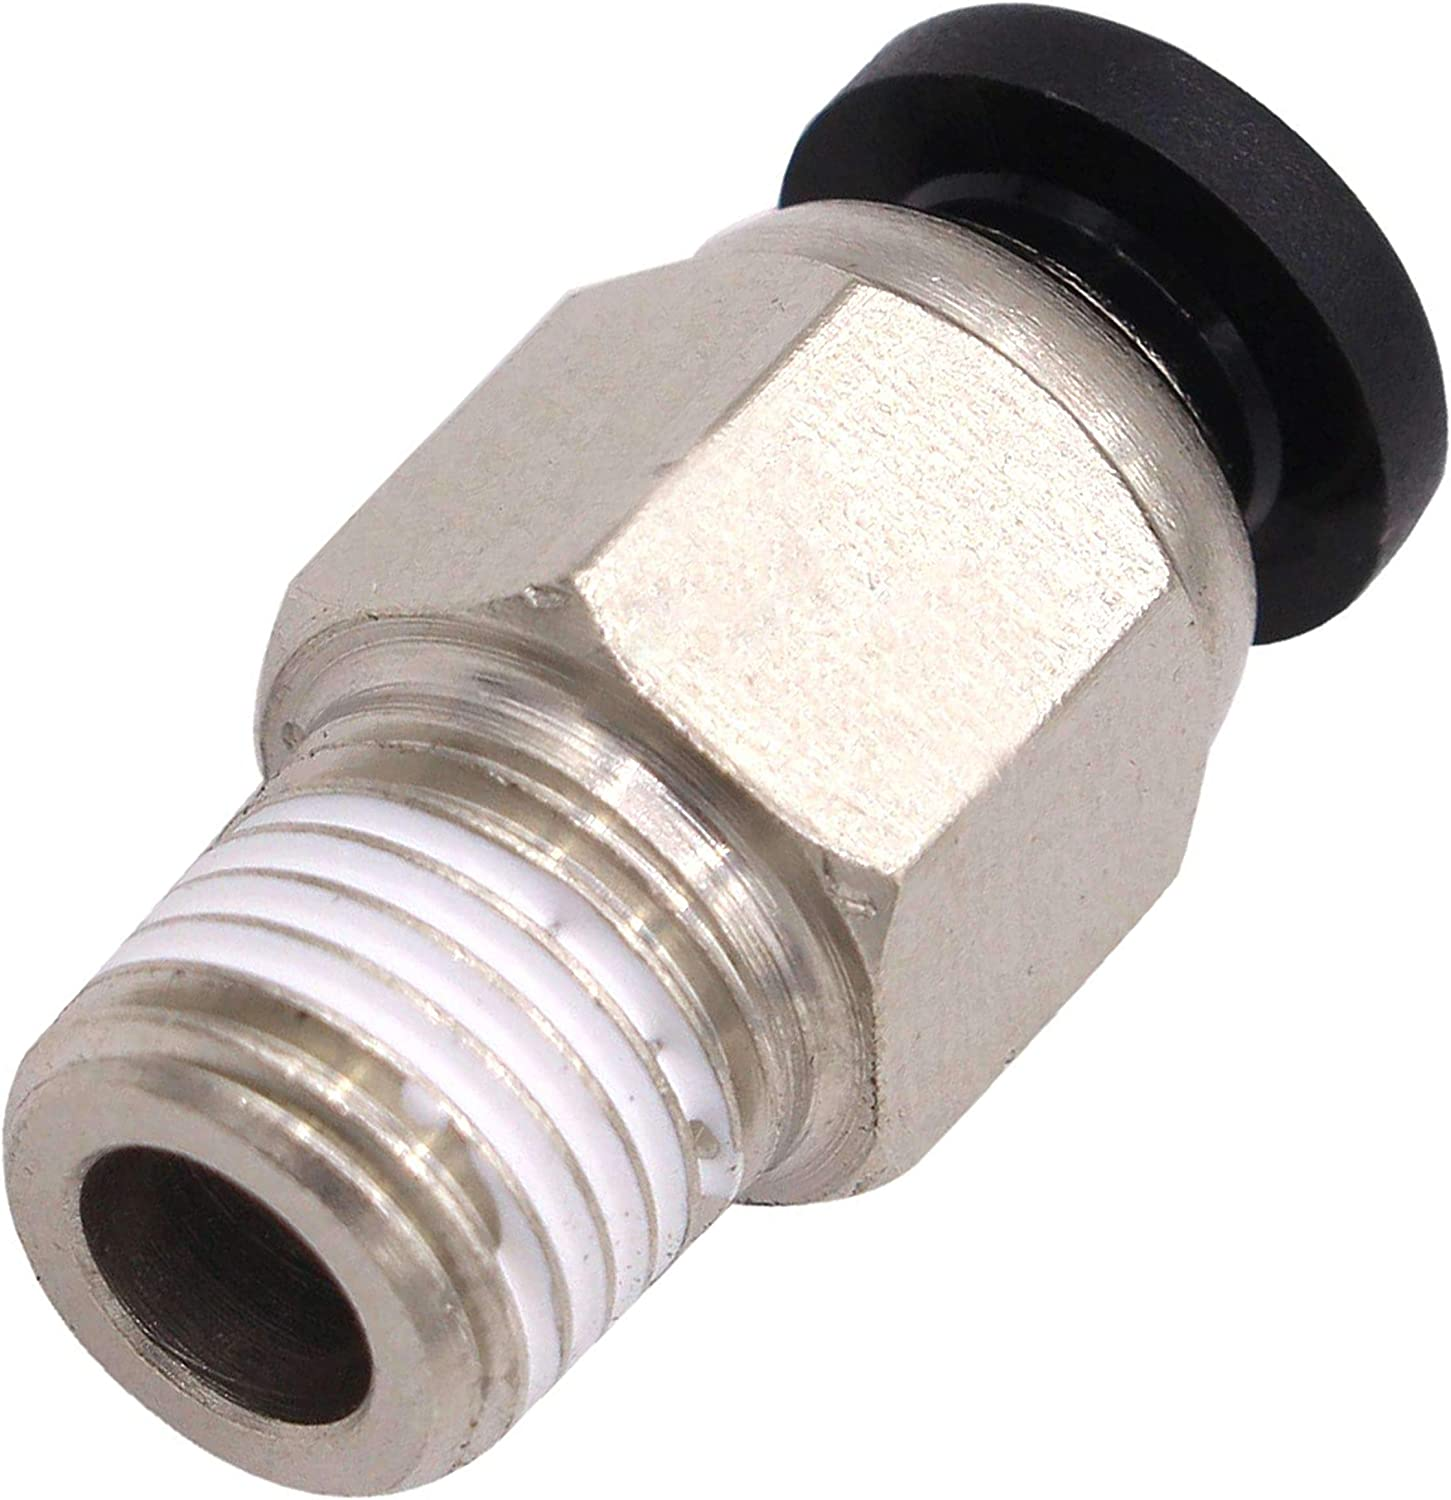 Pack of 10 1//4 Tube X 1//4 NPT PneumaticPlus Push to Connect Water Fitting Male Straight Adaptor -